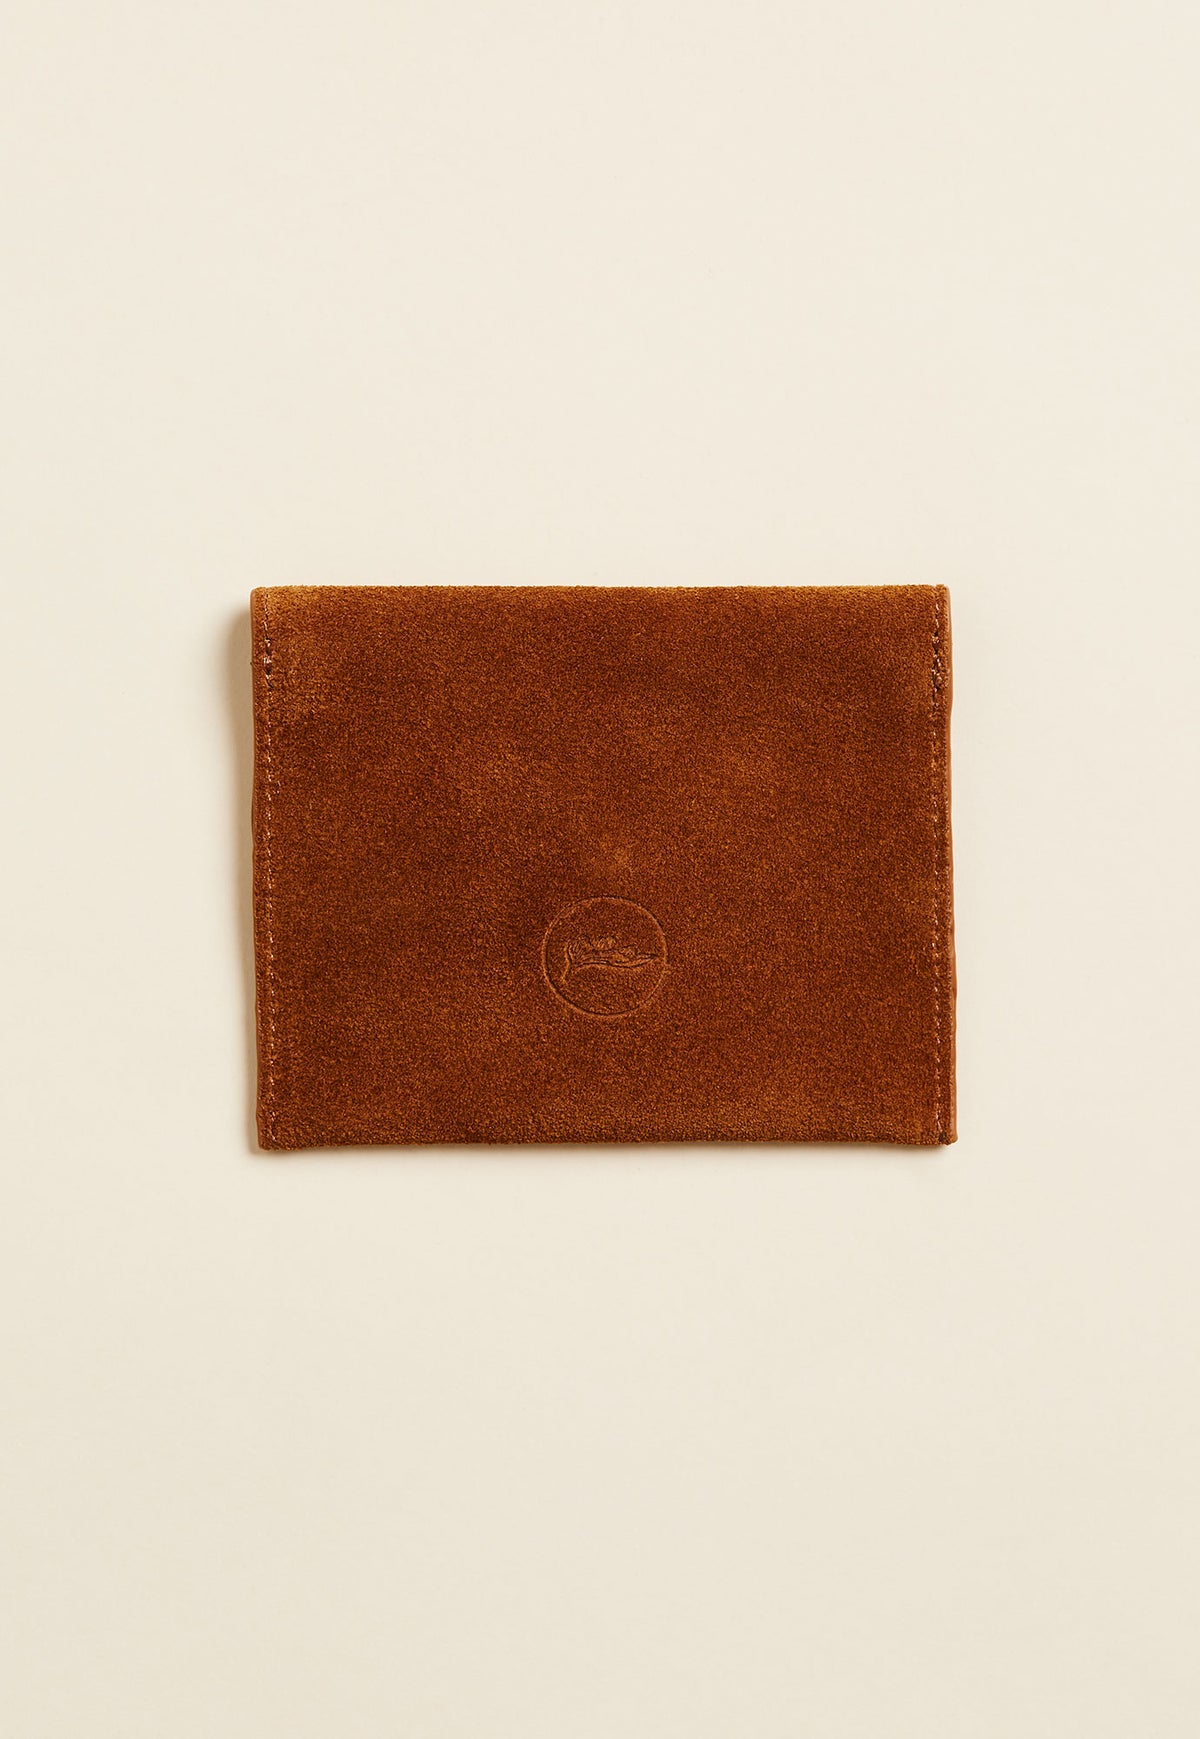 Maya Purse - Tobacco Suede